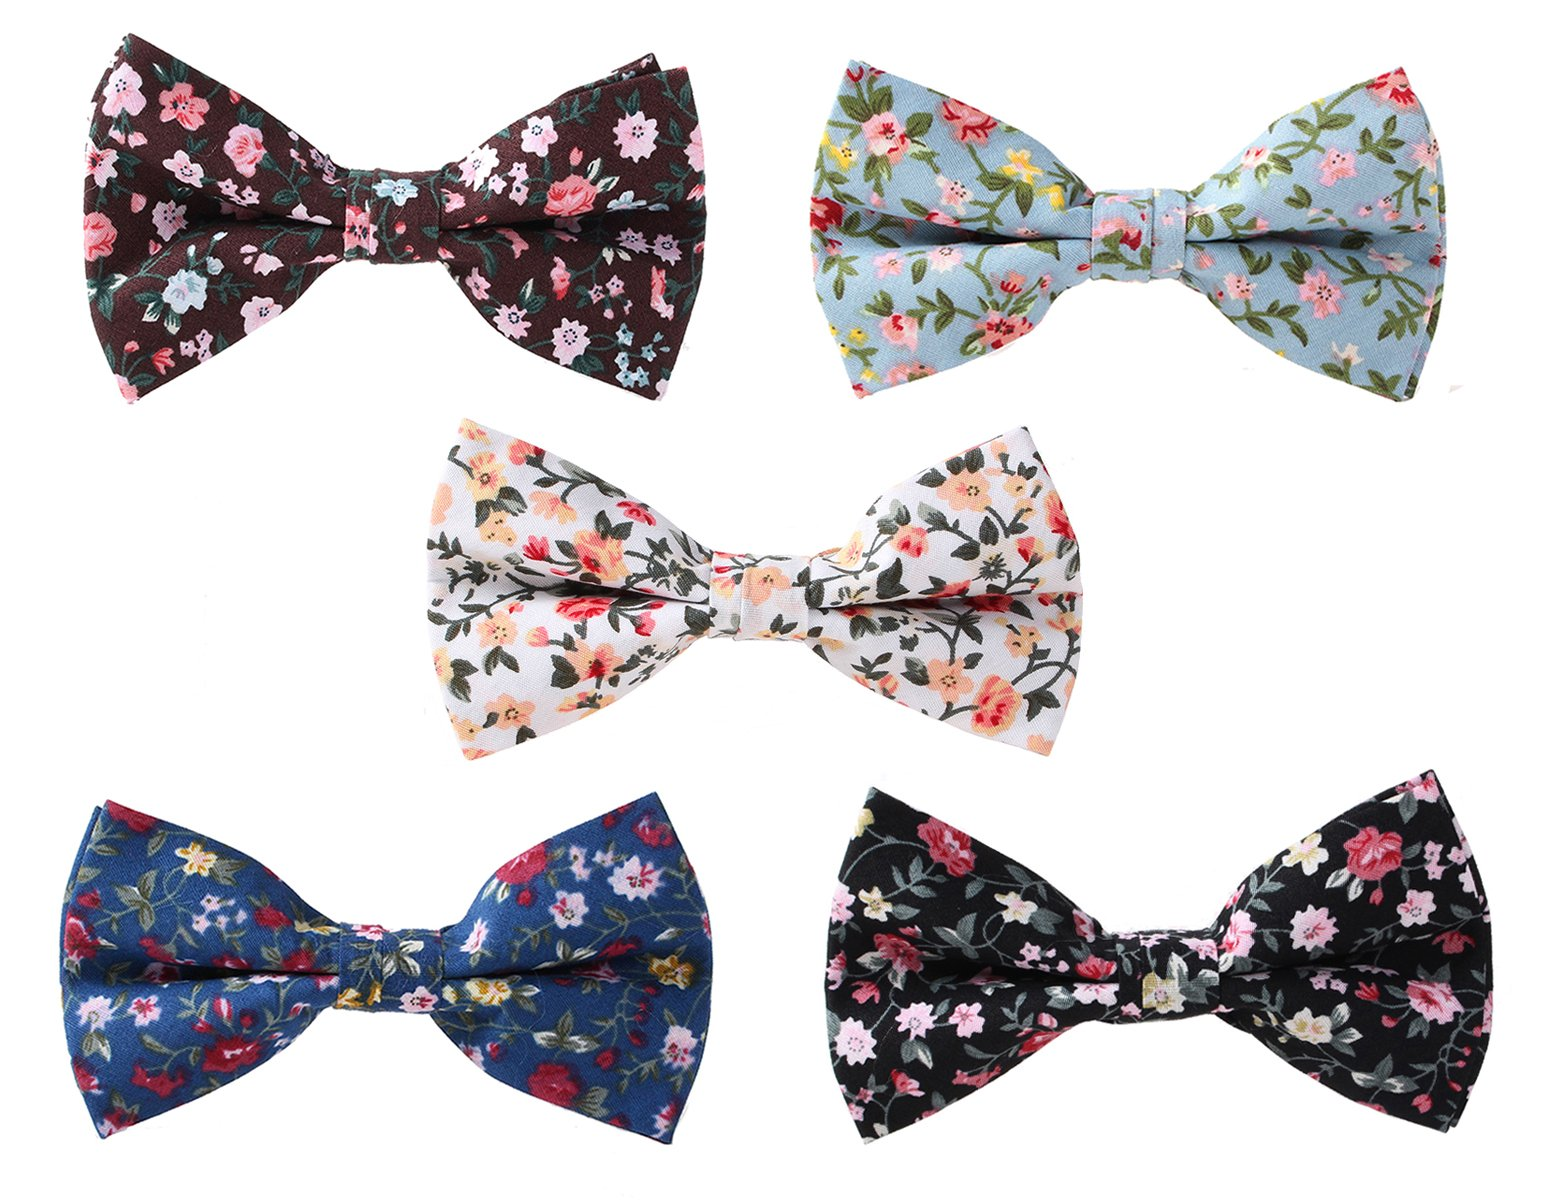 Levao Men's Cotton Floral Printing Bow Tie Mix 5 colors